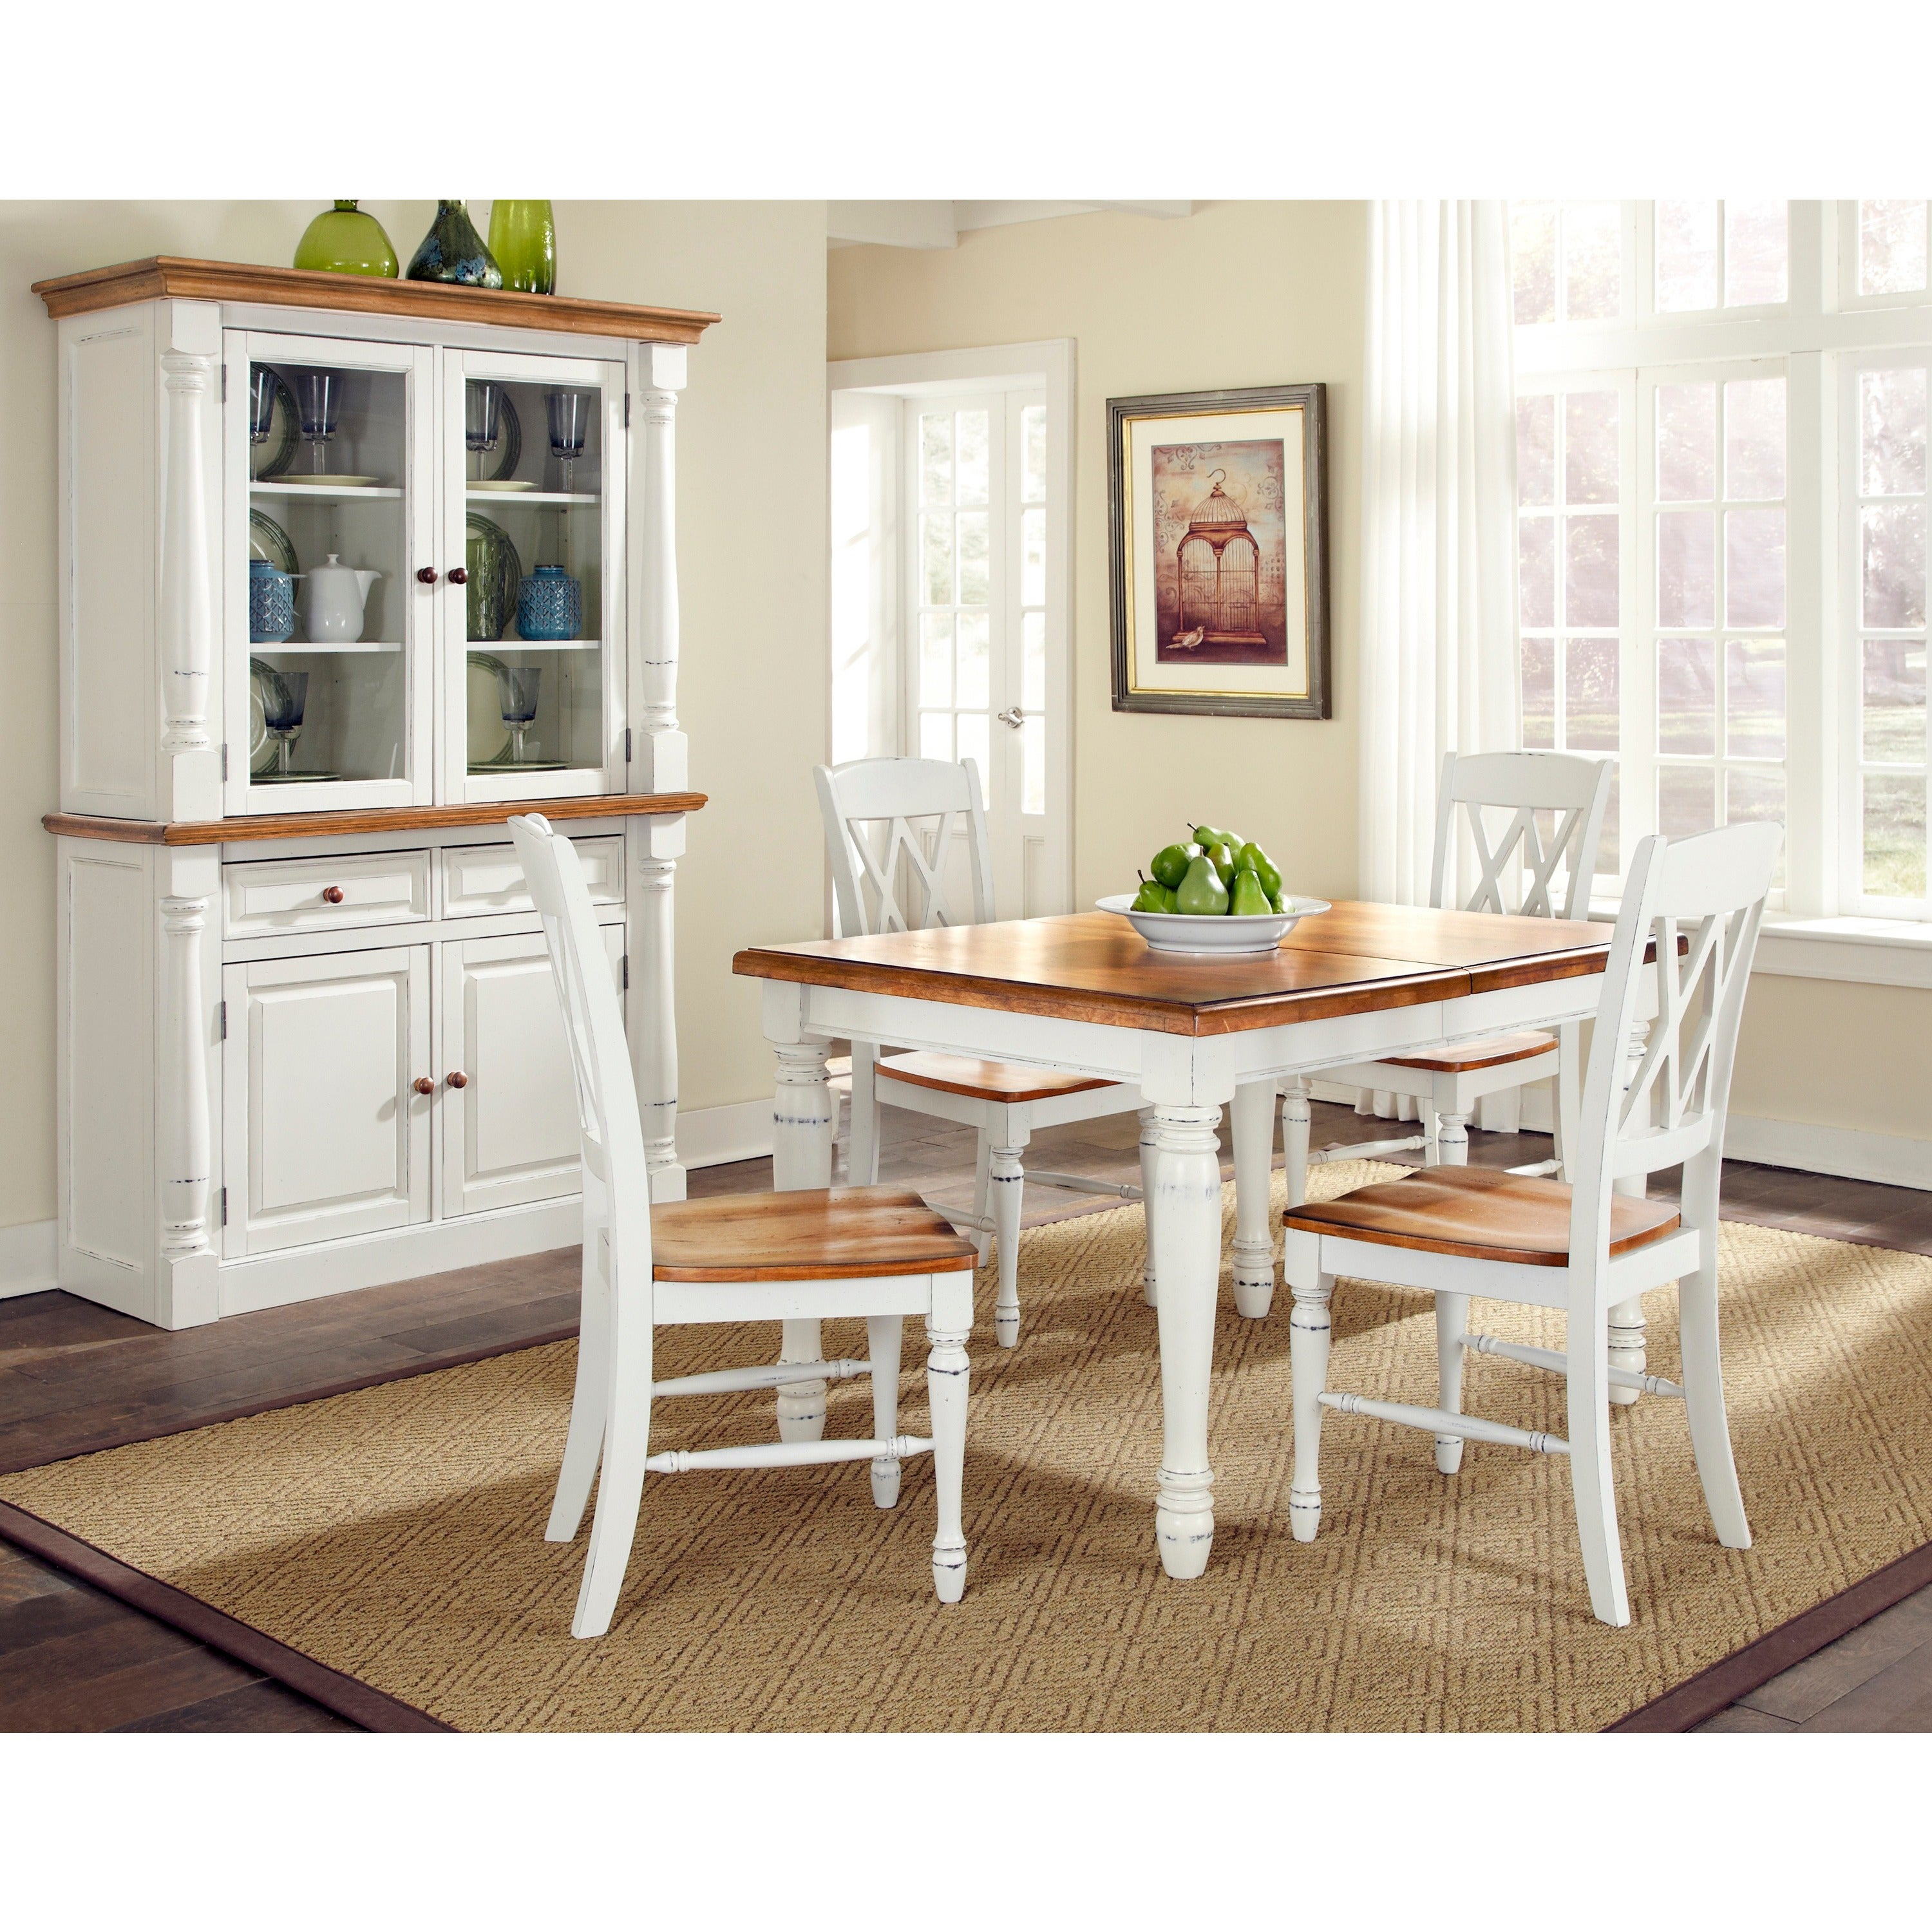 Monarch Rectangular Dining Table with Four Double X-back ...